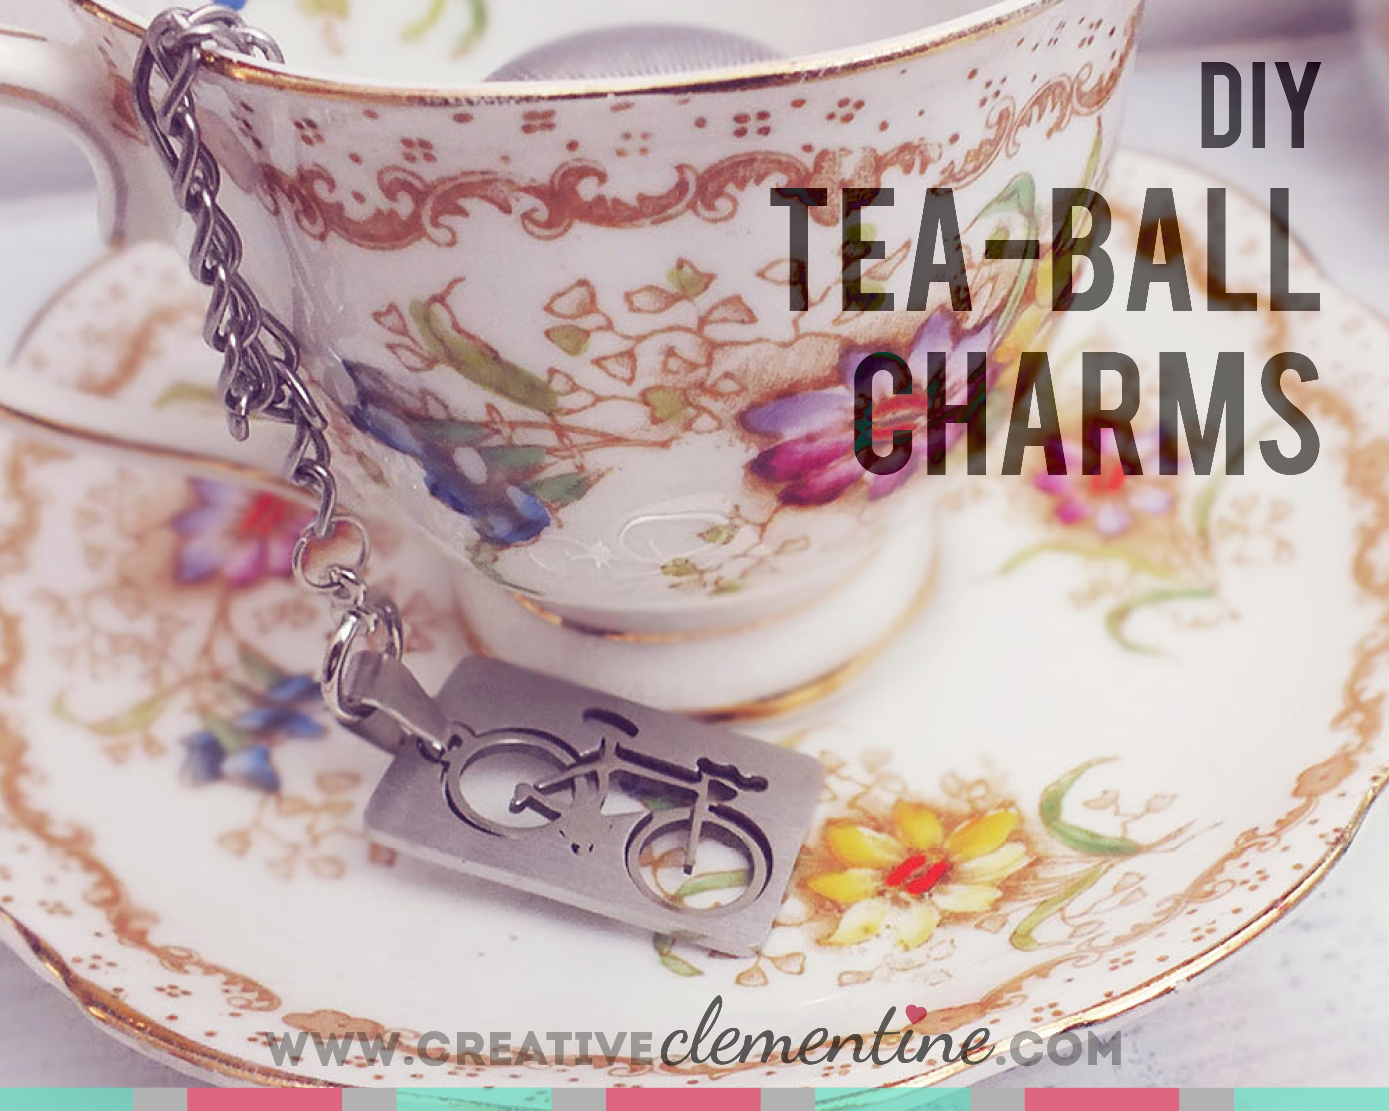 DIY Stainless Steel Personalized Tea Ball Charms via CreativeClementine.com